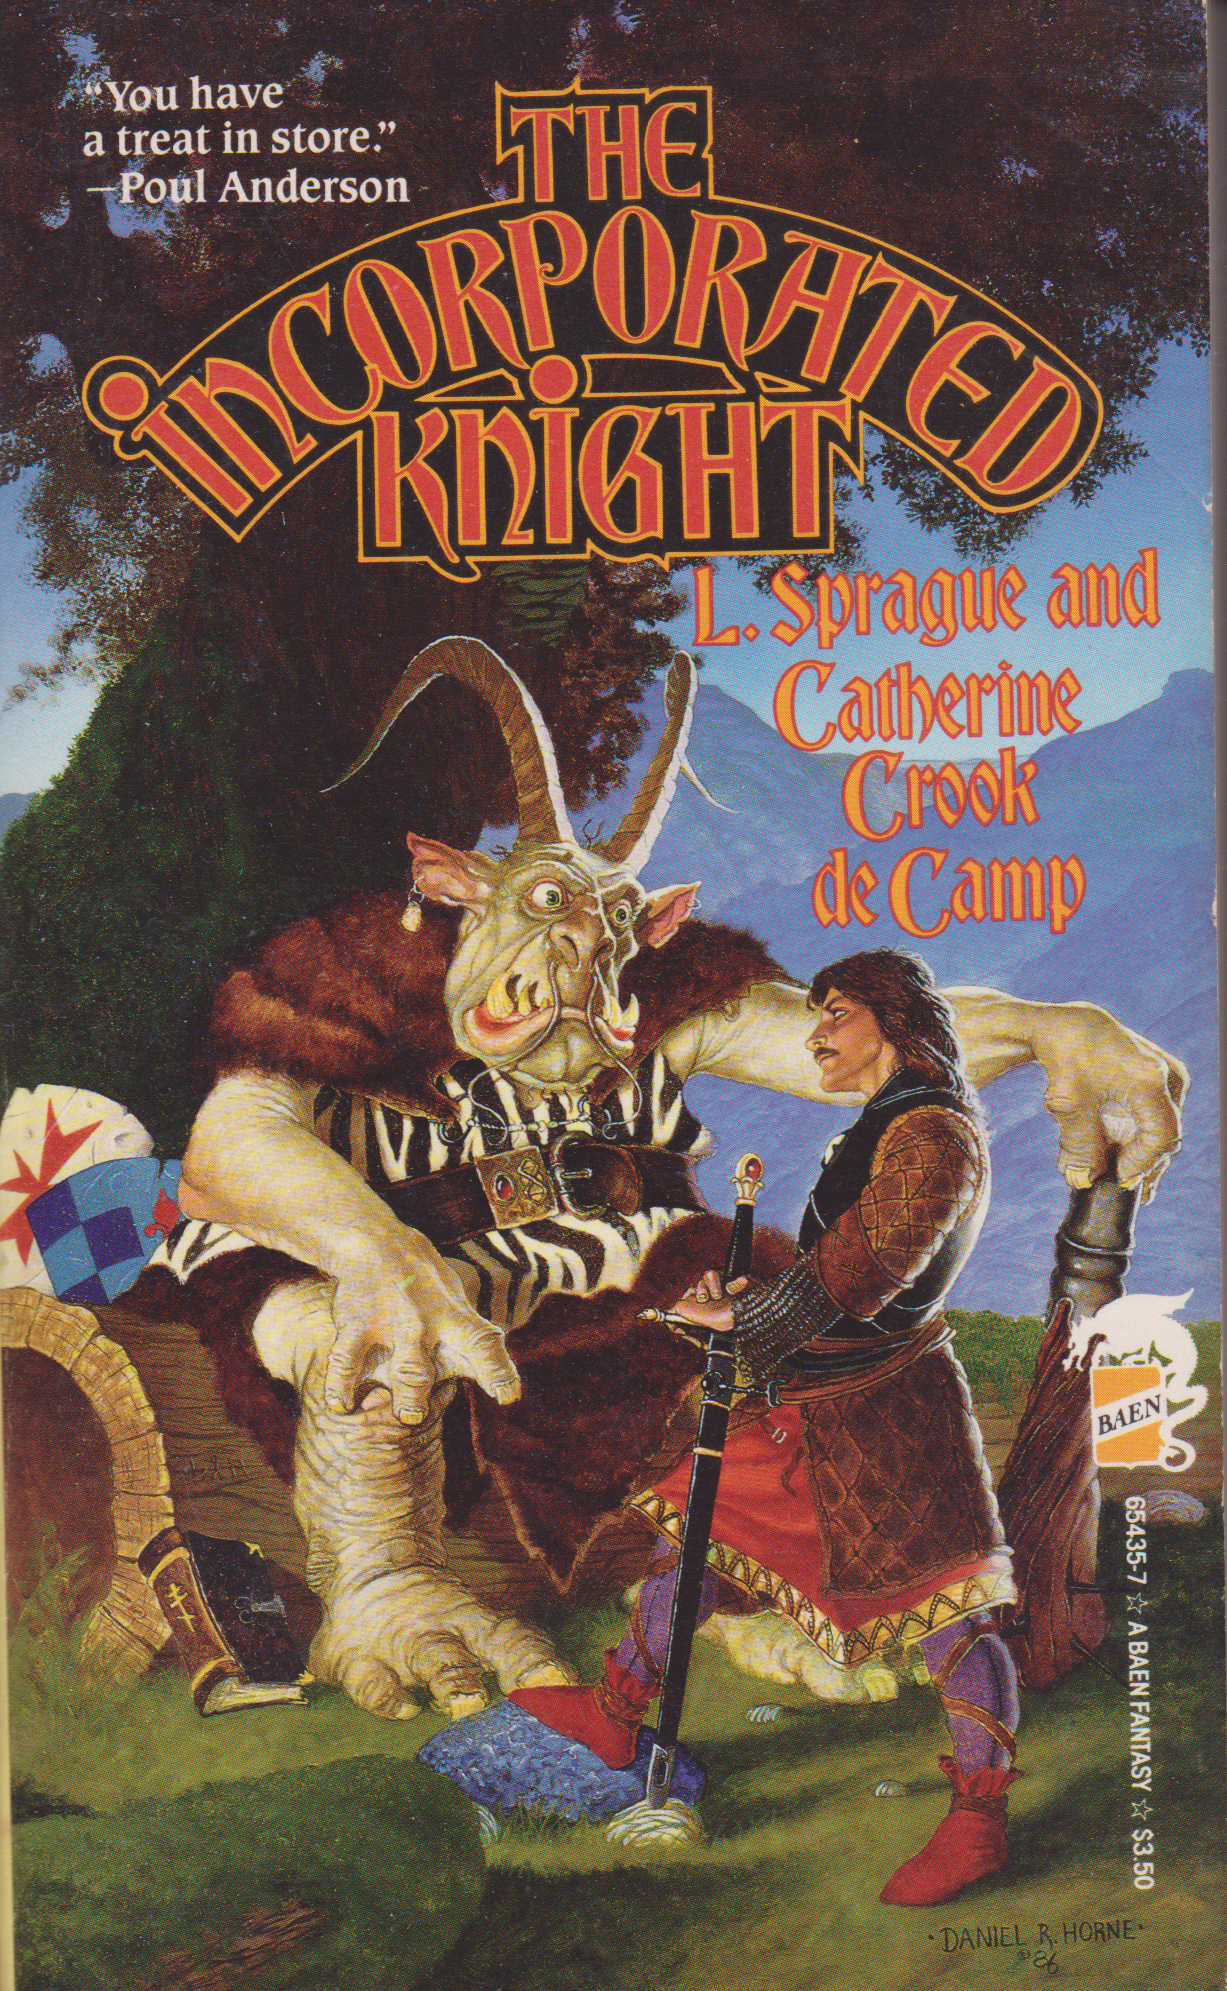 The Incorporated Knight by L Sprague and Catherine Cook de Camp-front.png